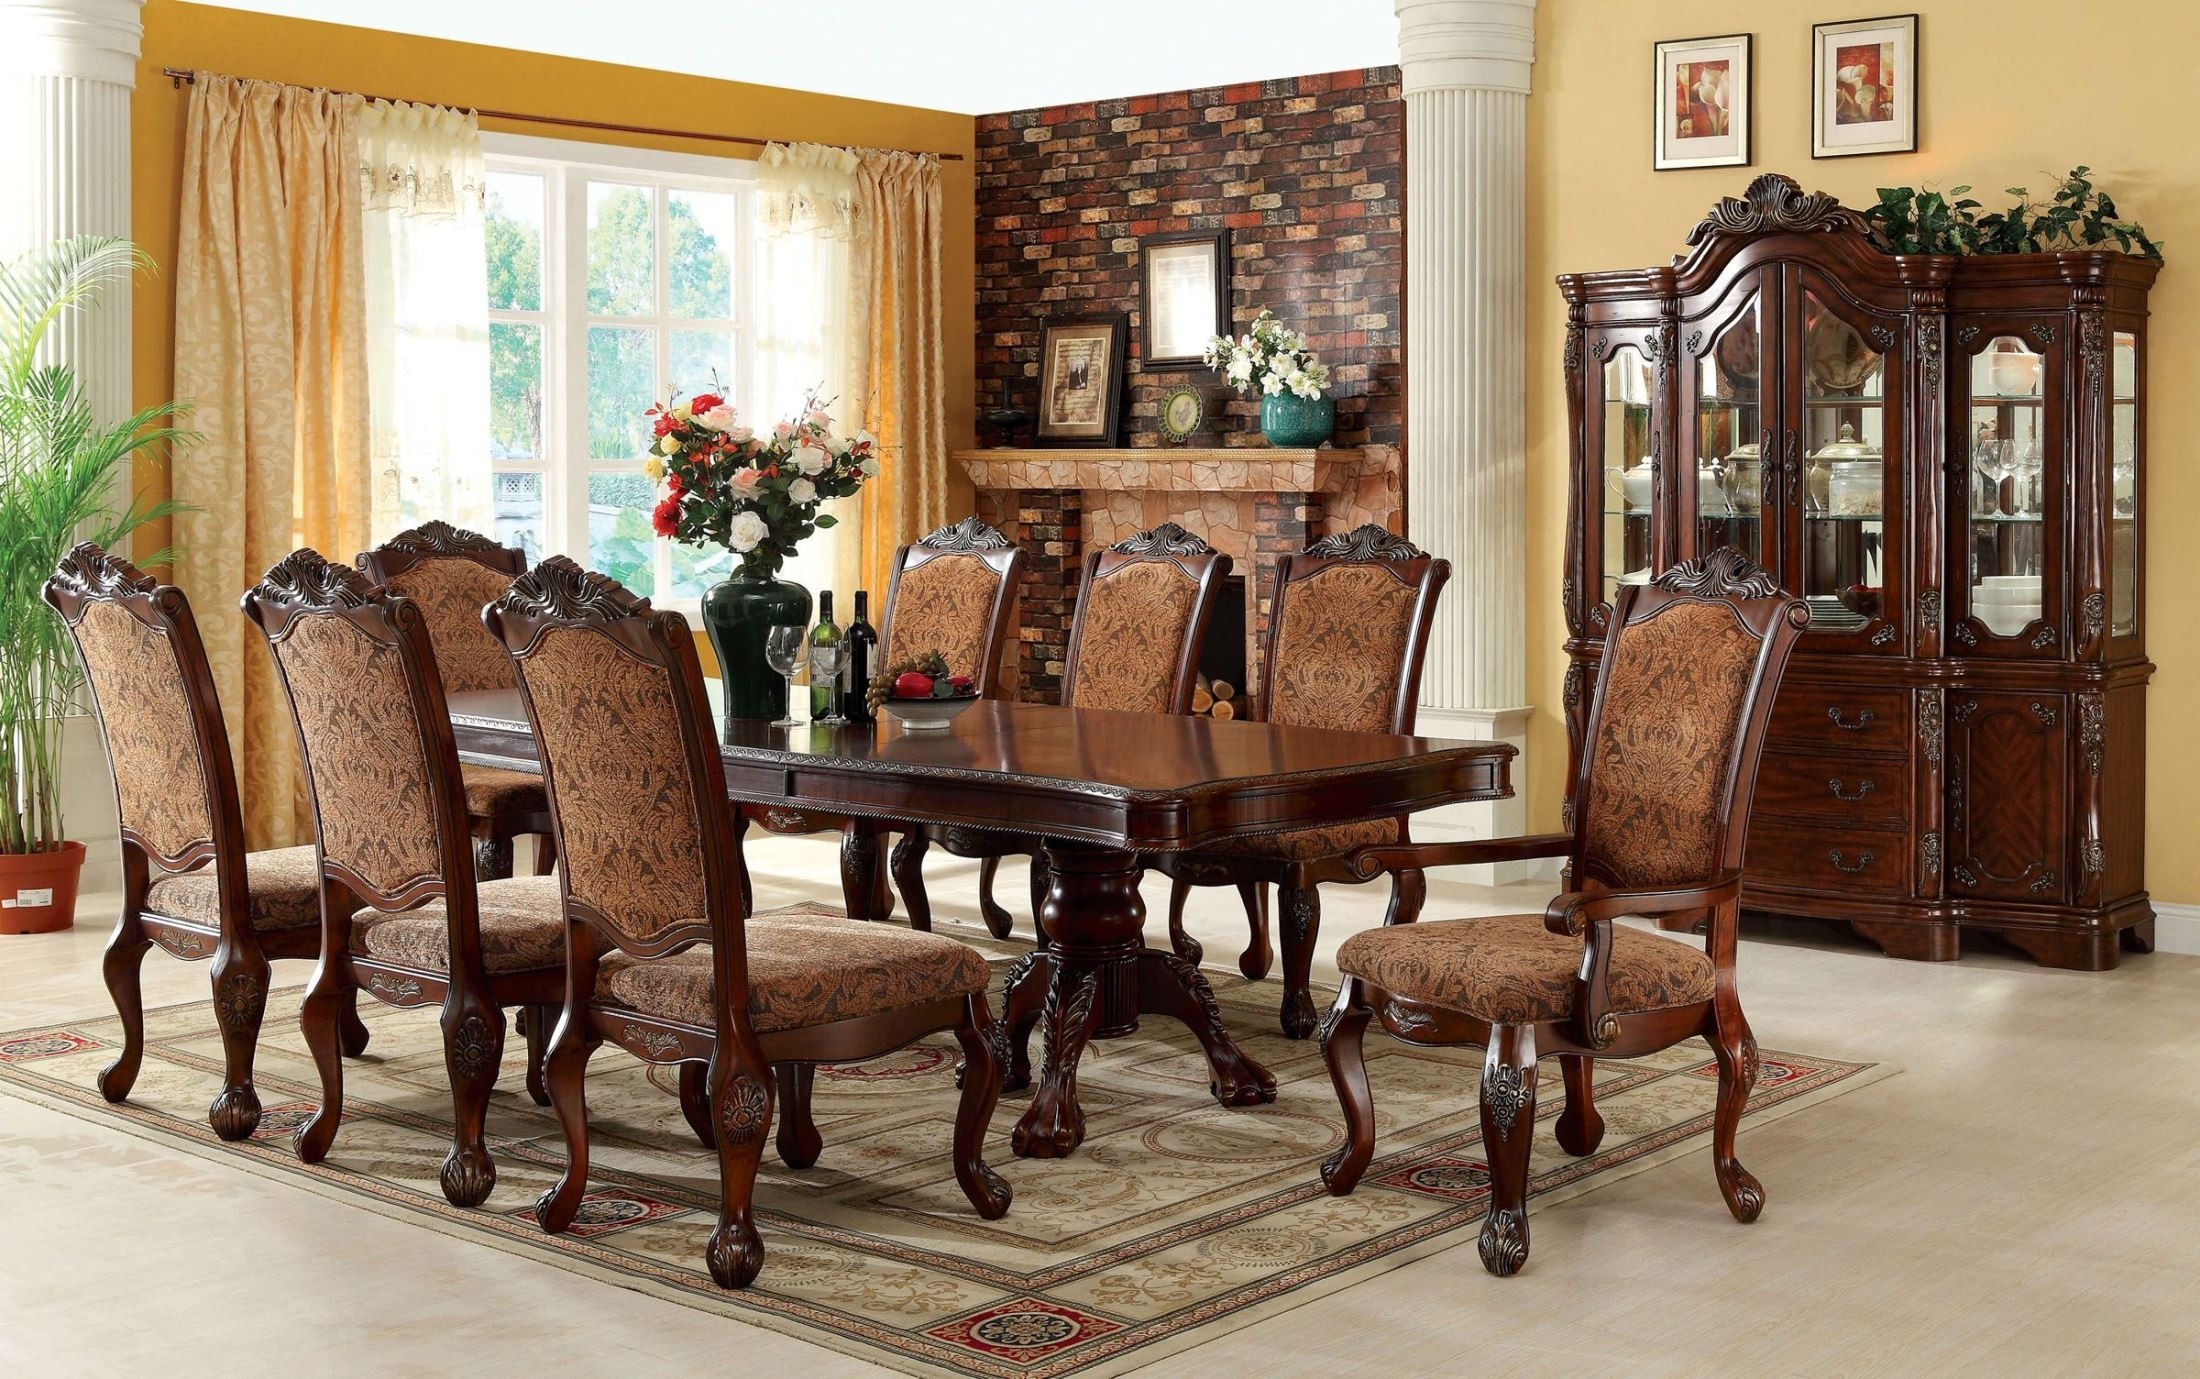 cromwell antique cherry formal dining room set cm3103t antique dining room furniture 1920 4 best dining room